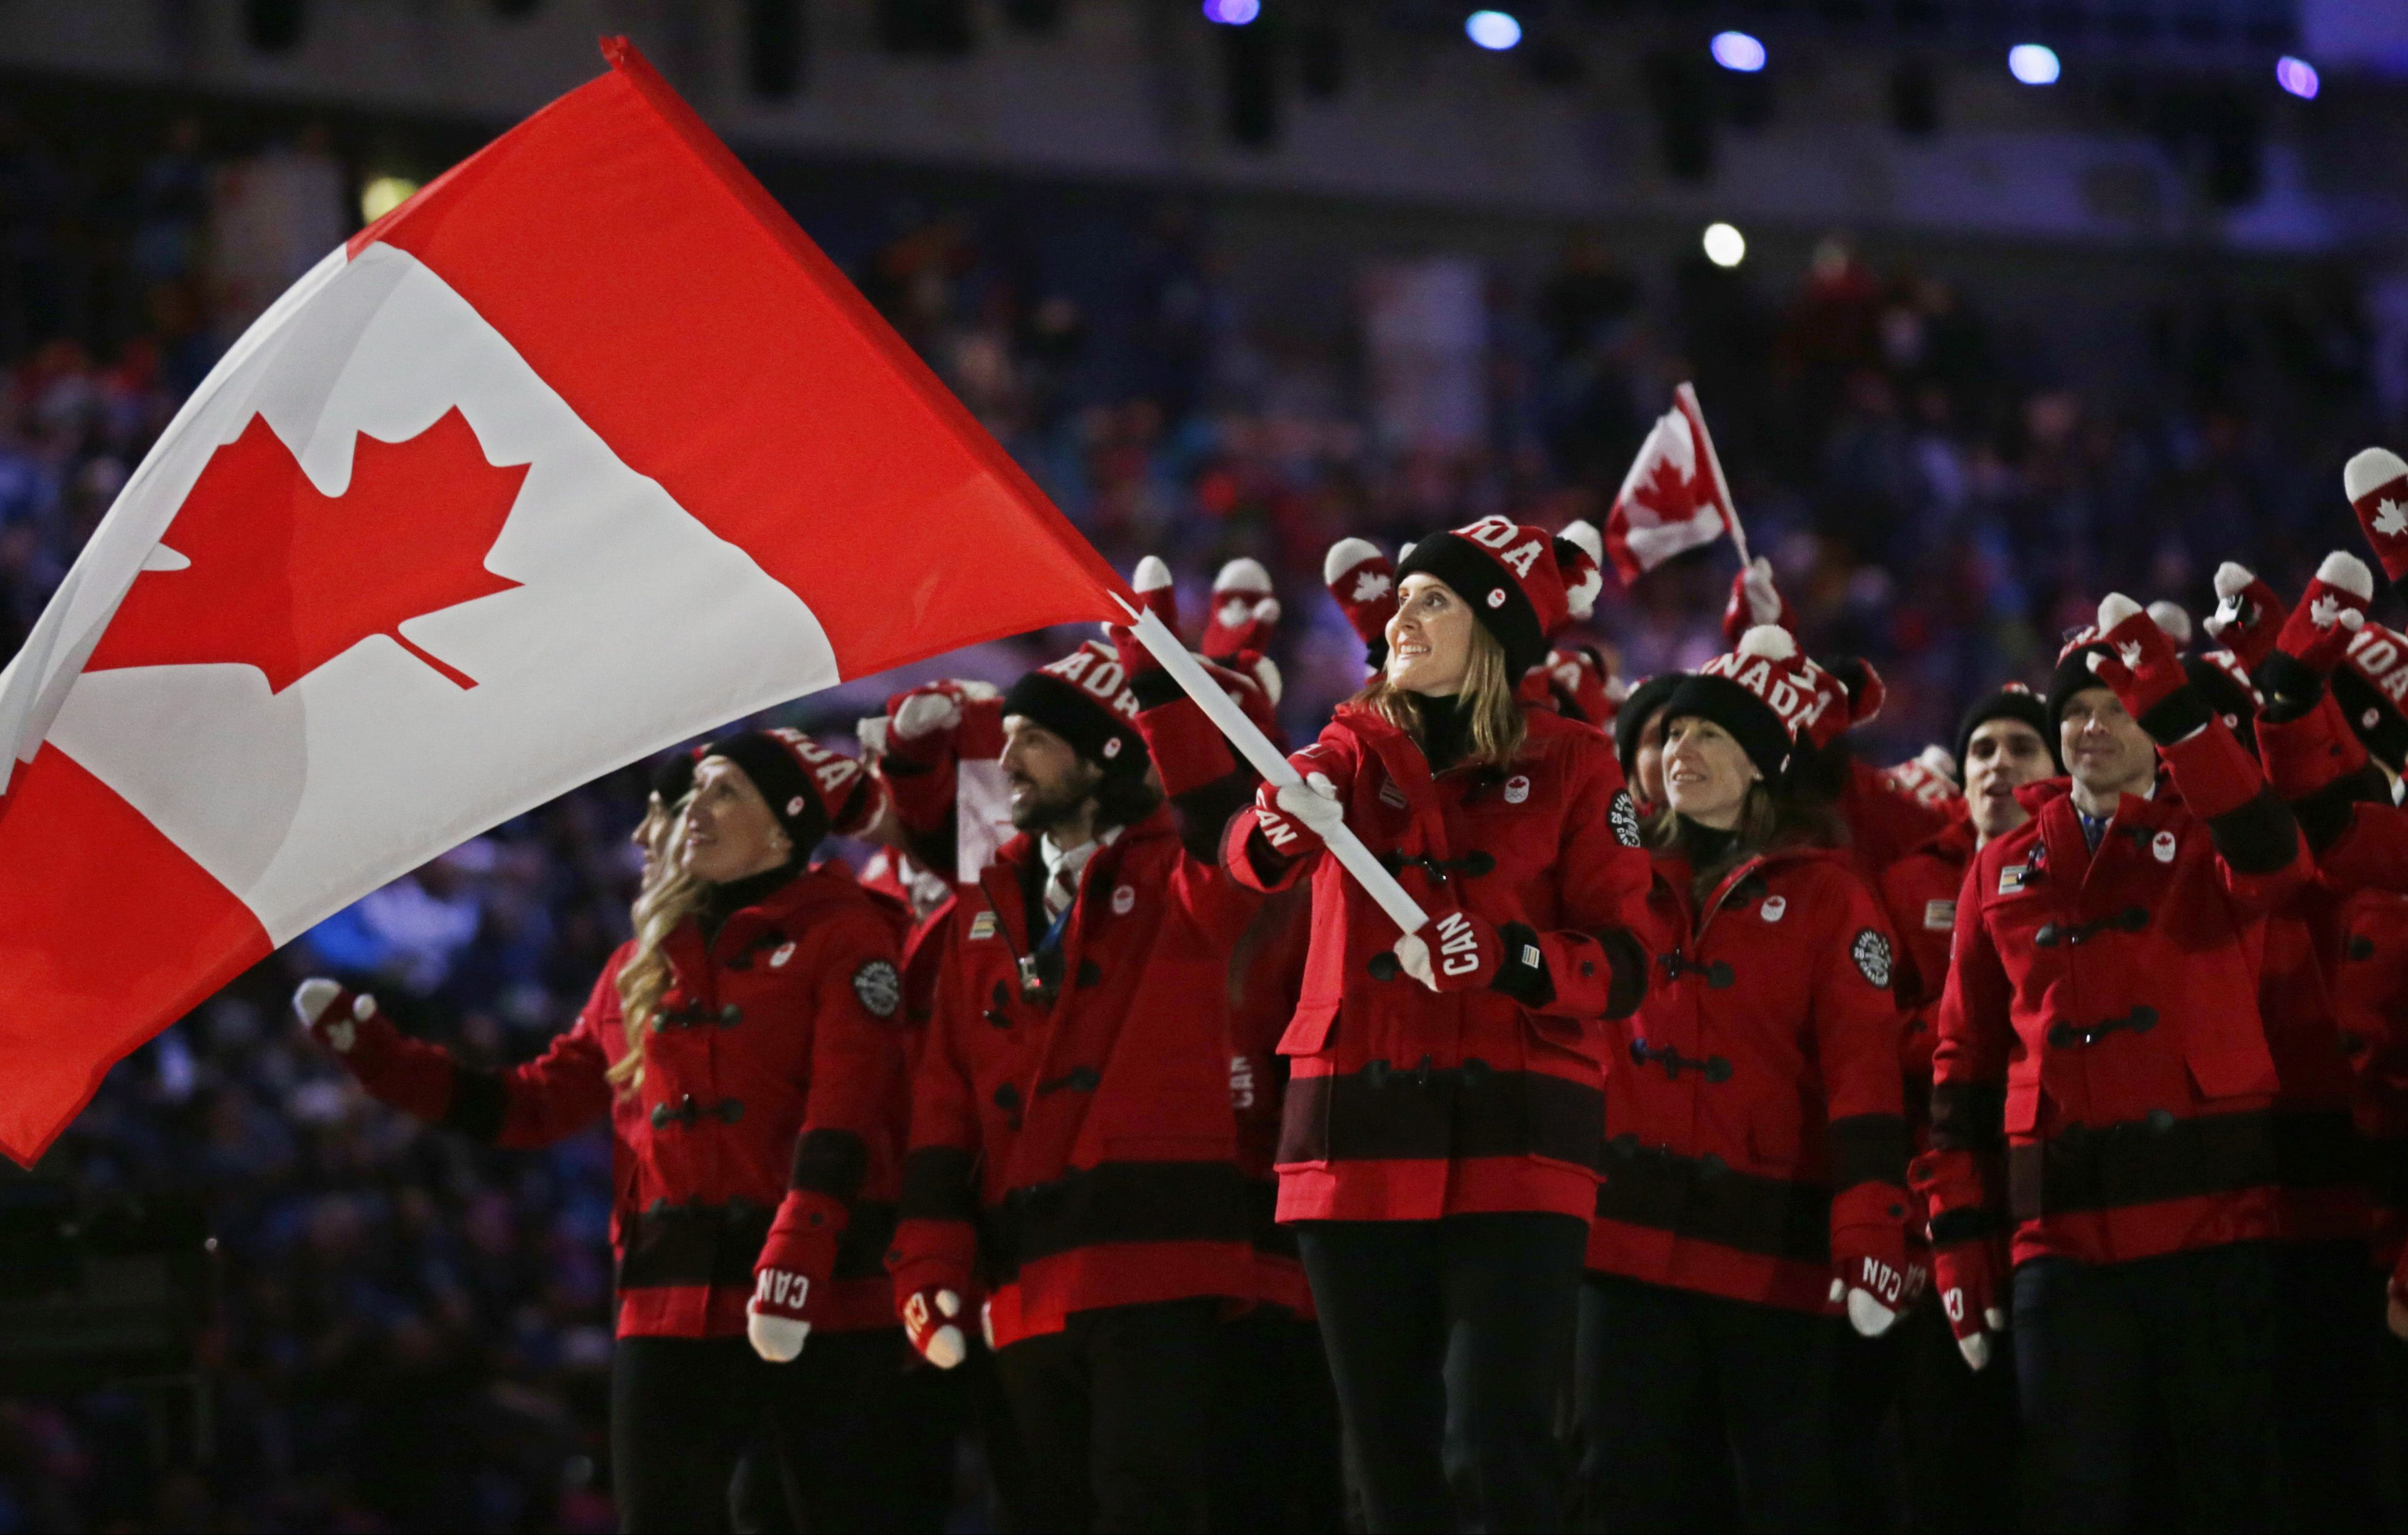 Hayley Wickenheiser of Canada carries her country flag as they arrive during the opening ceremony of the 2014 Winter Olympics in Sochi, Russia, Friday, Feb. 7, 2014. (AP Photo/Matt Dunham)